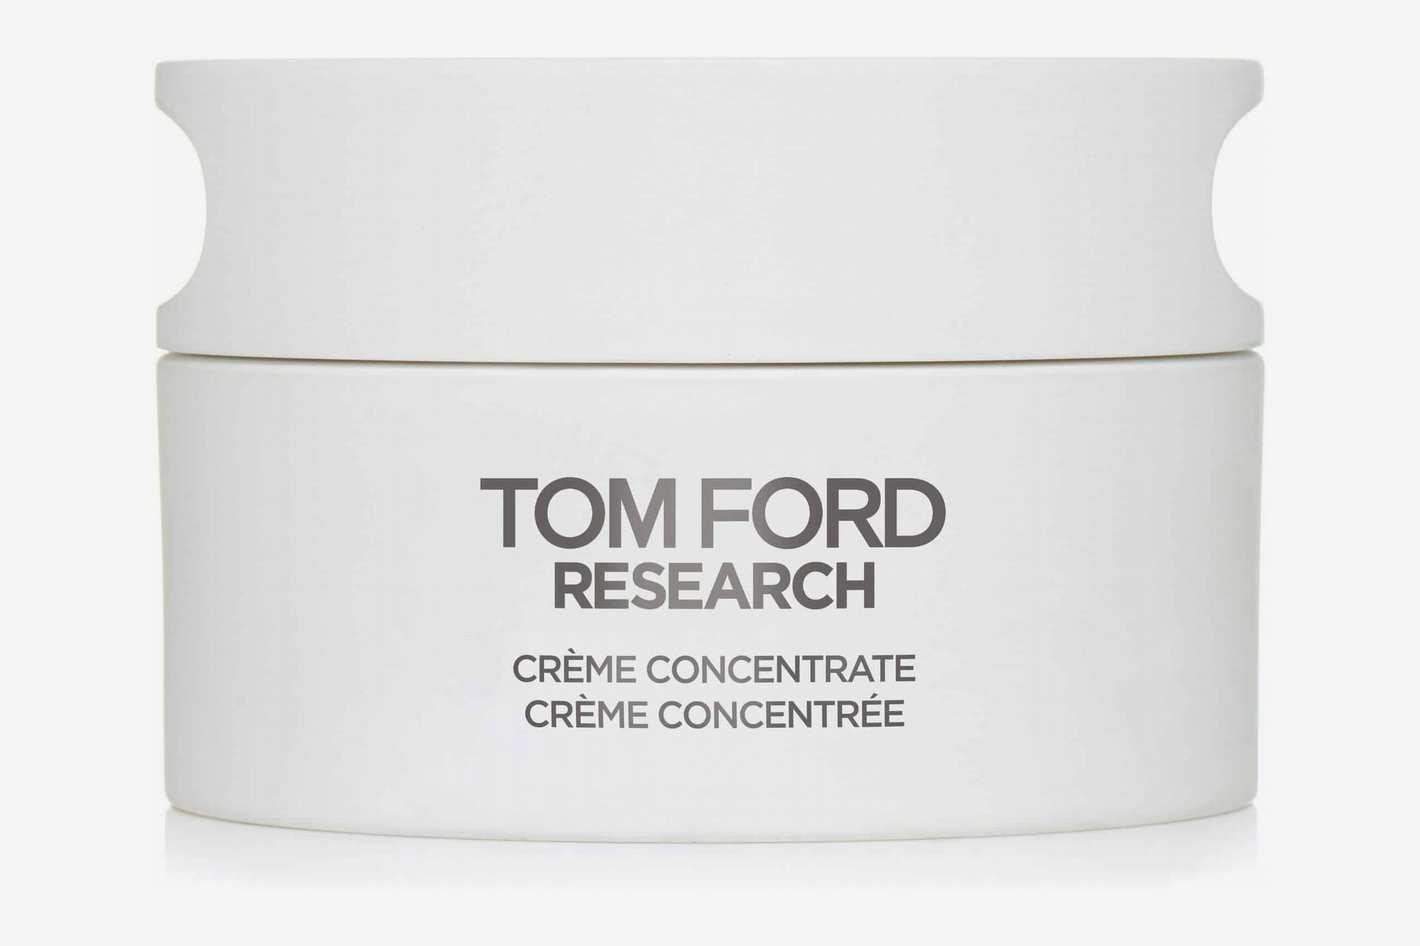 Tom Ford Research Crème Concentrate